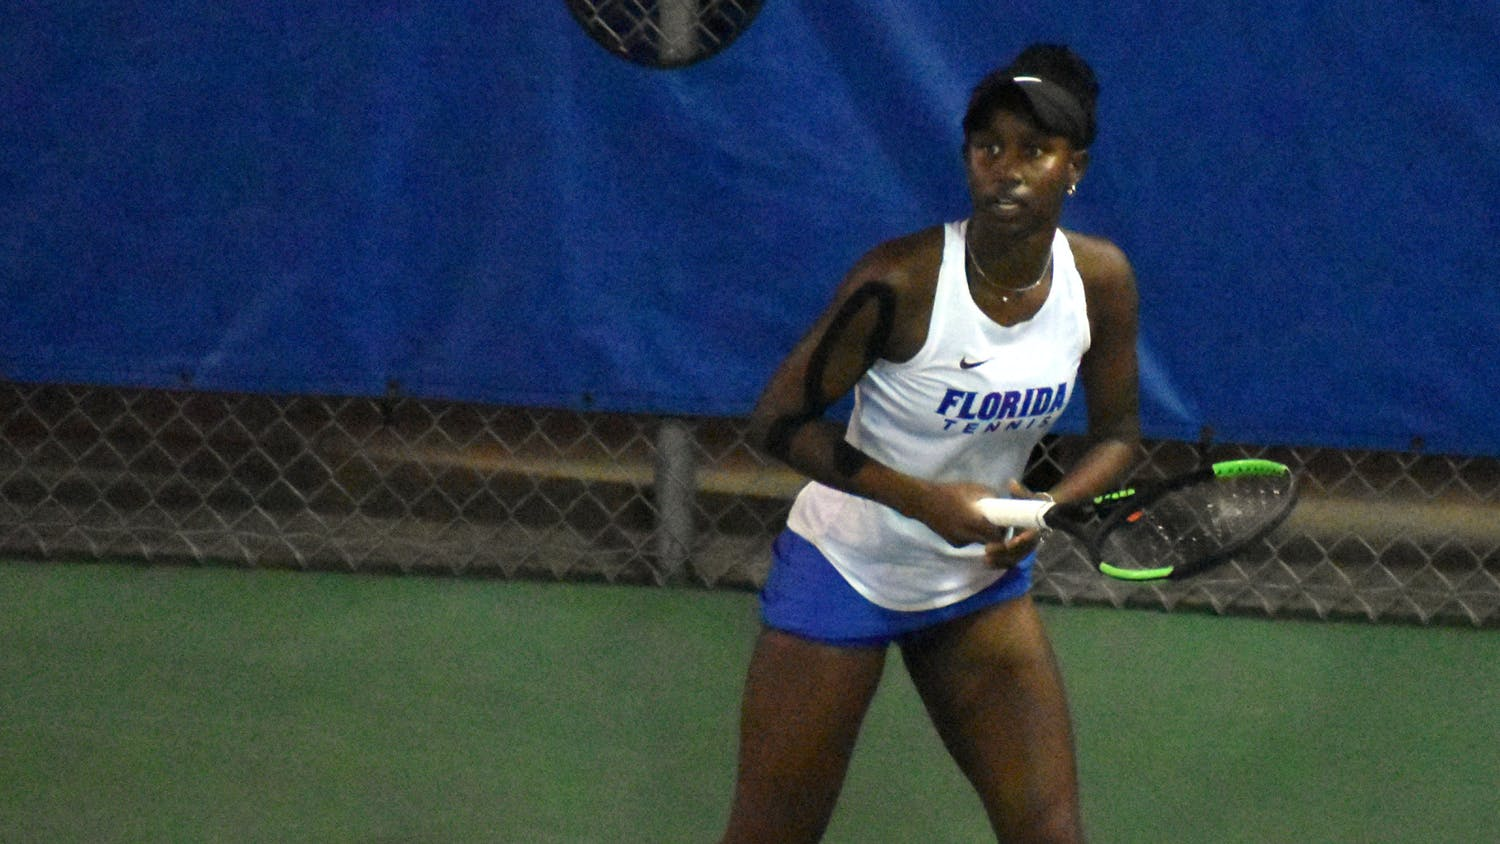 Florida's Marlee Zein competes in a match against Central Florida on Feb. 9, 2021.